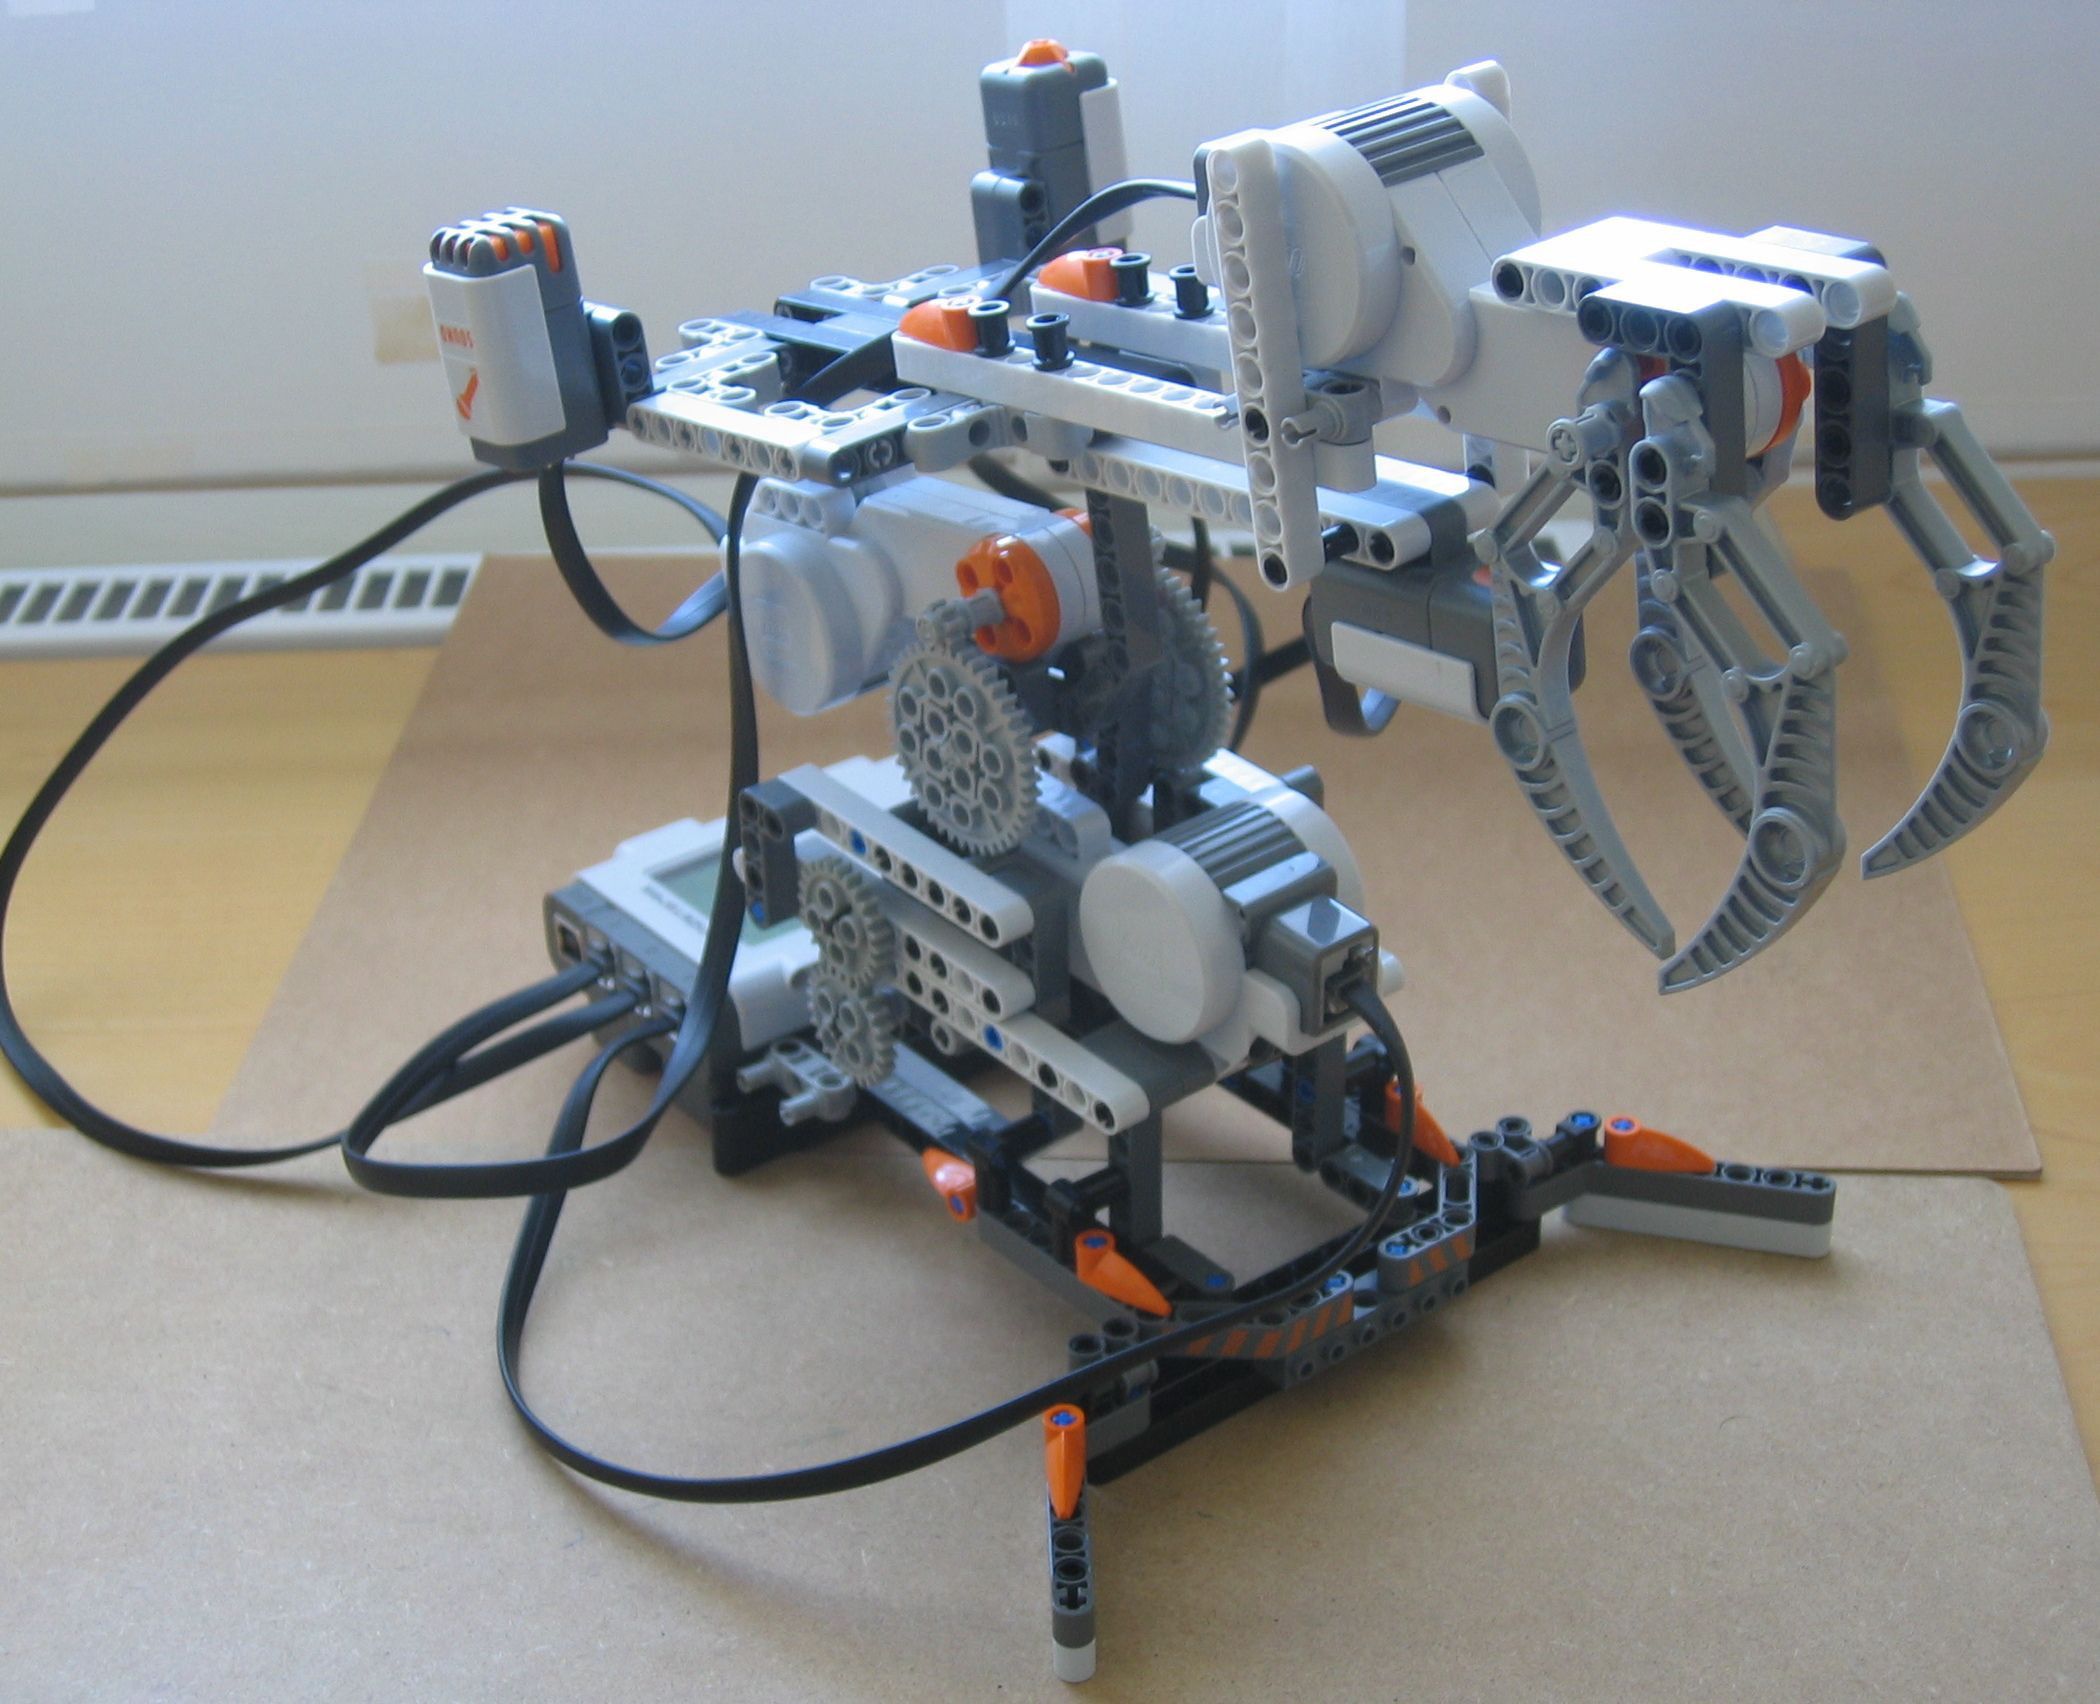 Camera Lego Nxt : How to build a simple robotic arm from lego mindstorms nxt kids